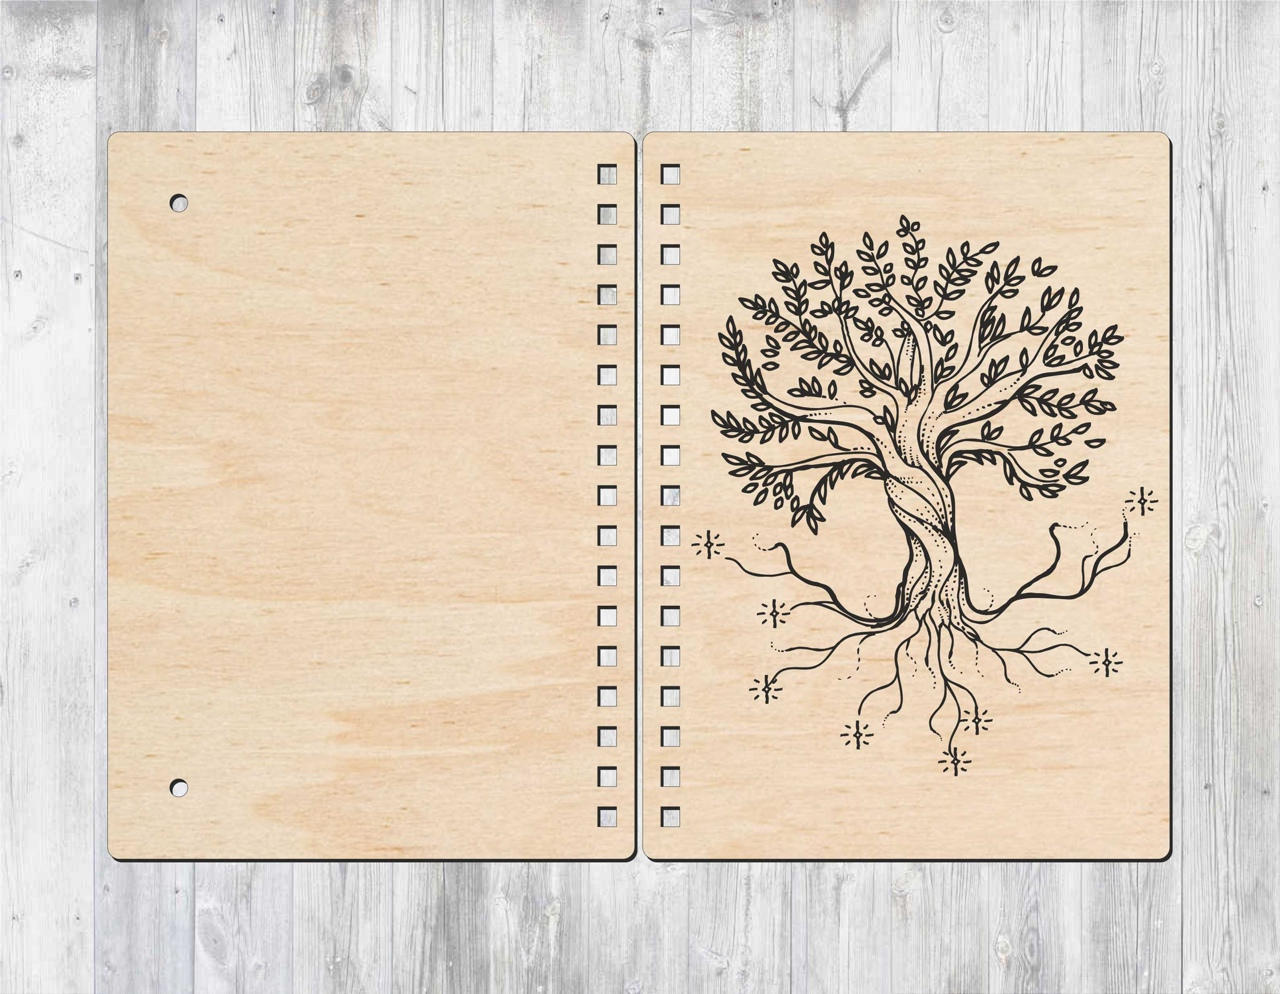 Laser Cut Cover For Notebook With Wood Layout Free CDR Vectors Art